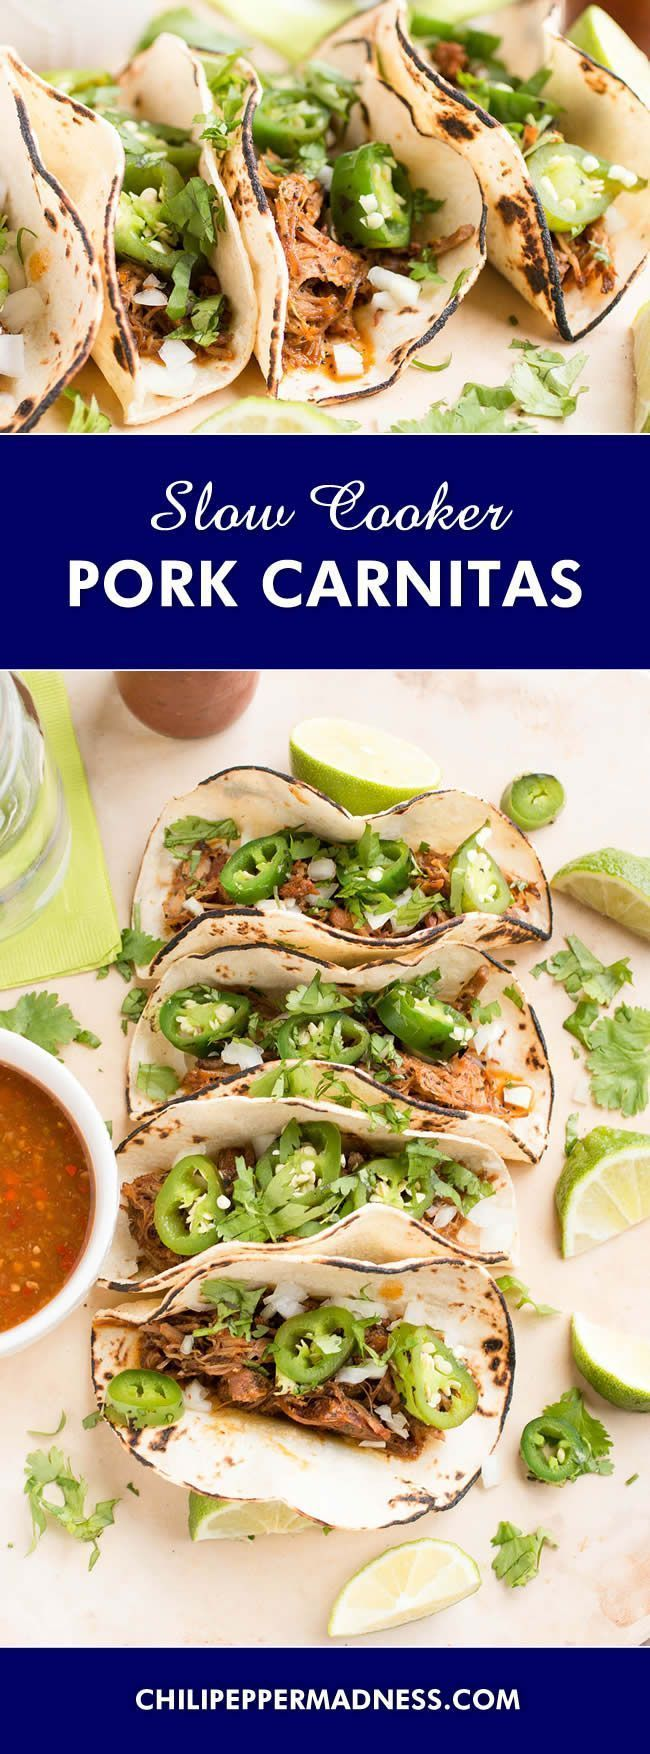 Photo of Slow Cooker Pork Carnitas (Crispy Mexican Pul